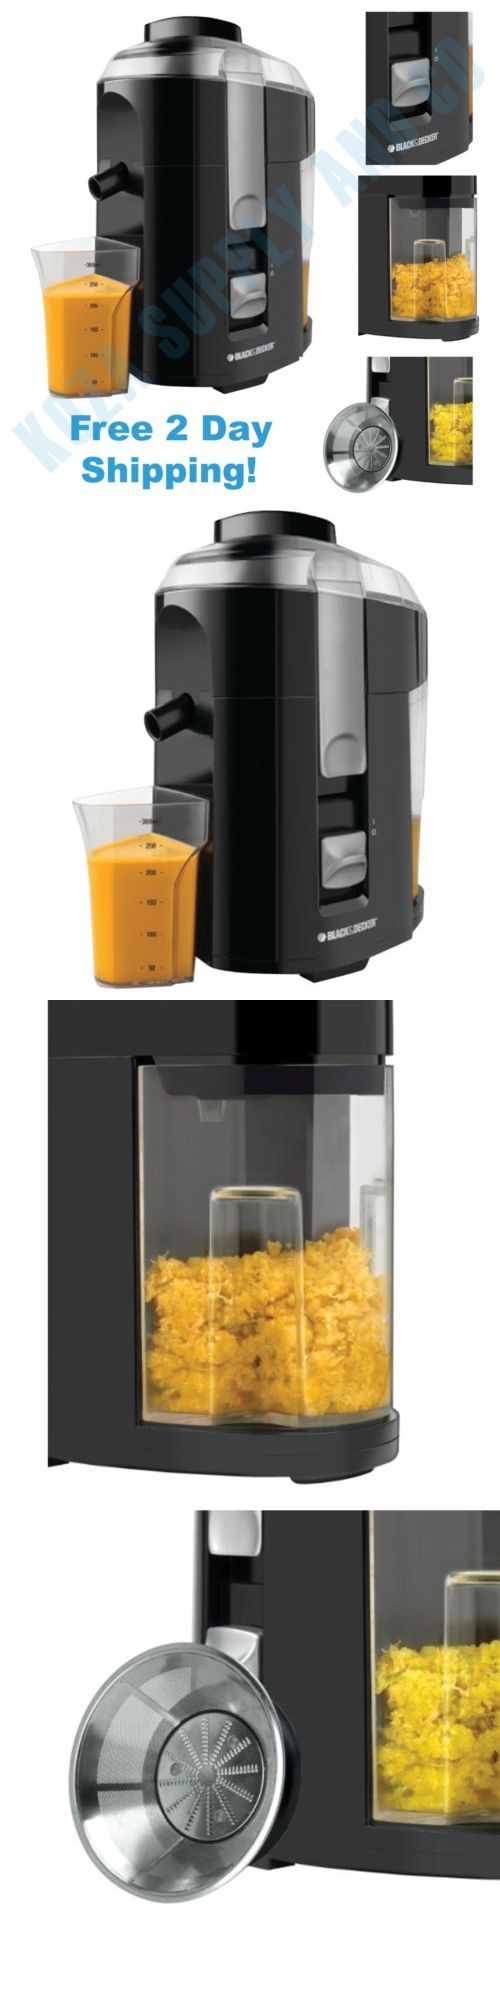 Small Kitchen Appliances: Electric Juice Extractor Machine Fruit And Vegetable Juicer Fresh Maker Squeezer -> BUY IT NOW ONLY: $48.24 on eBay!